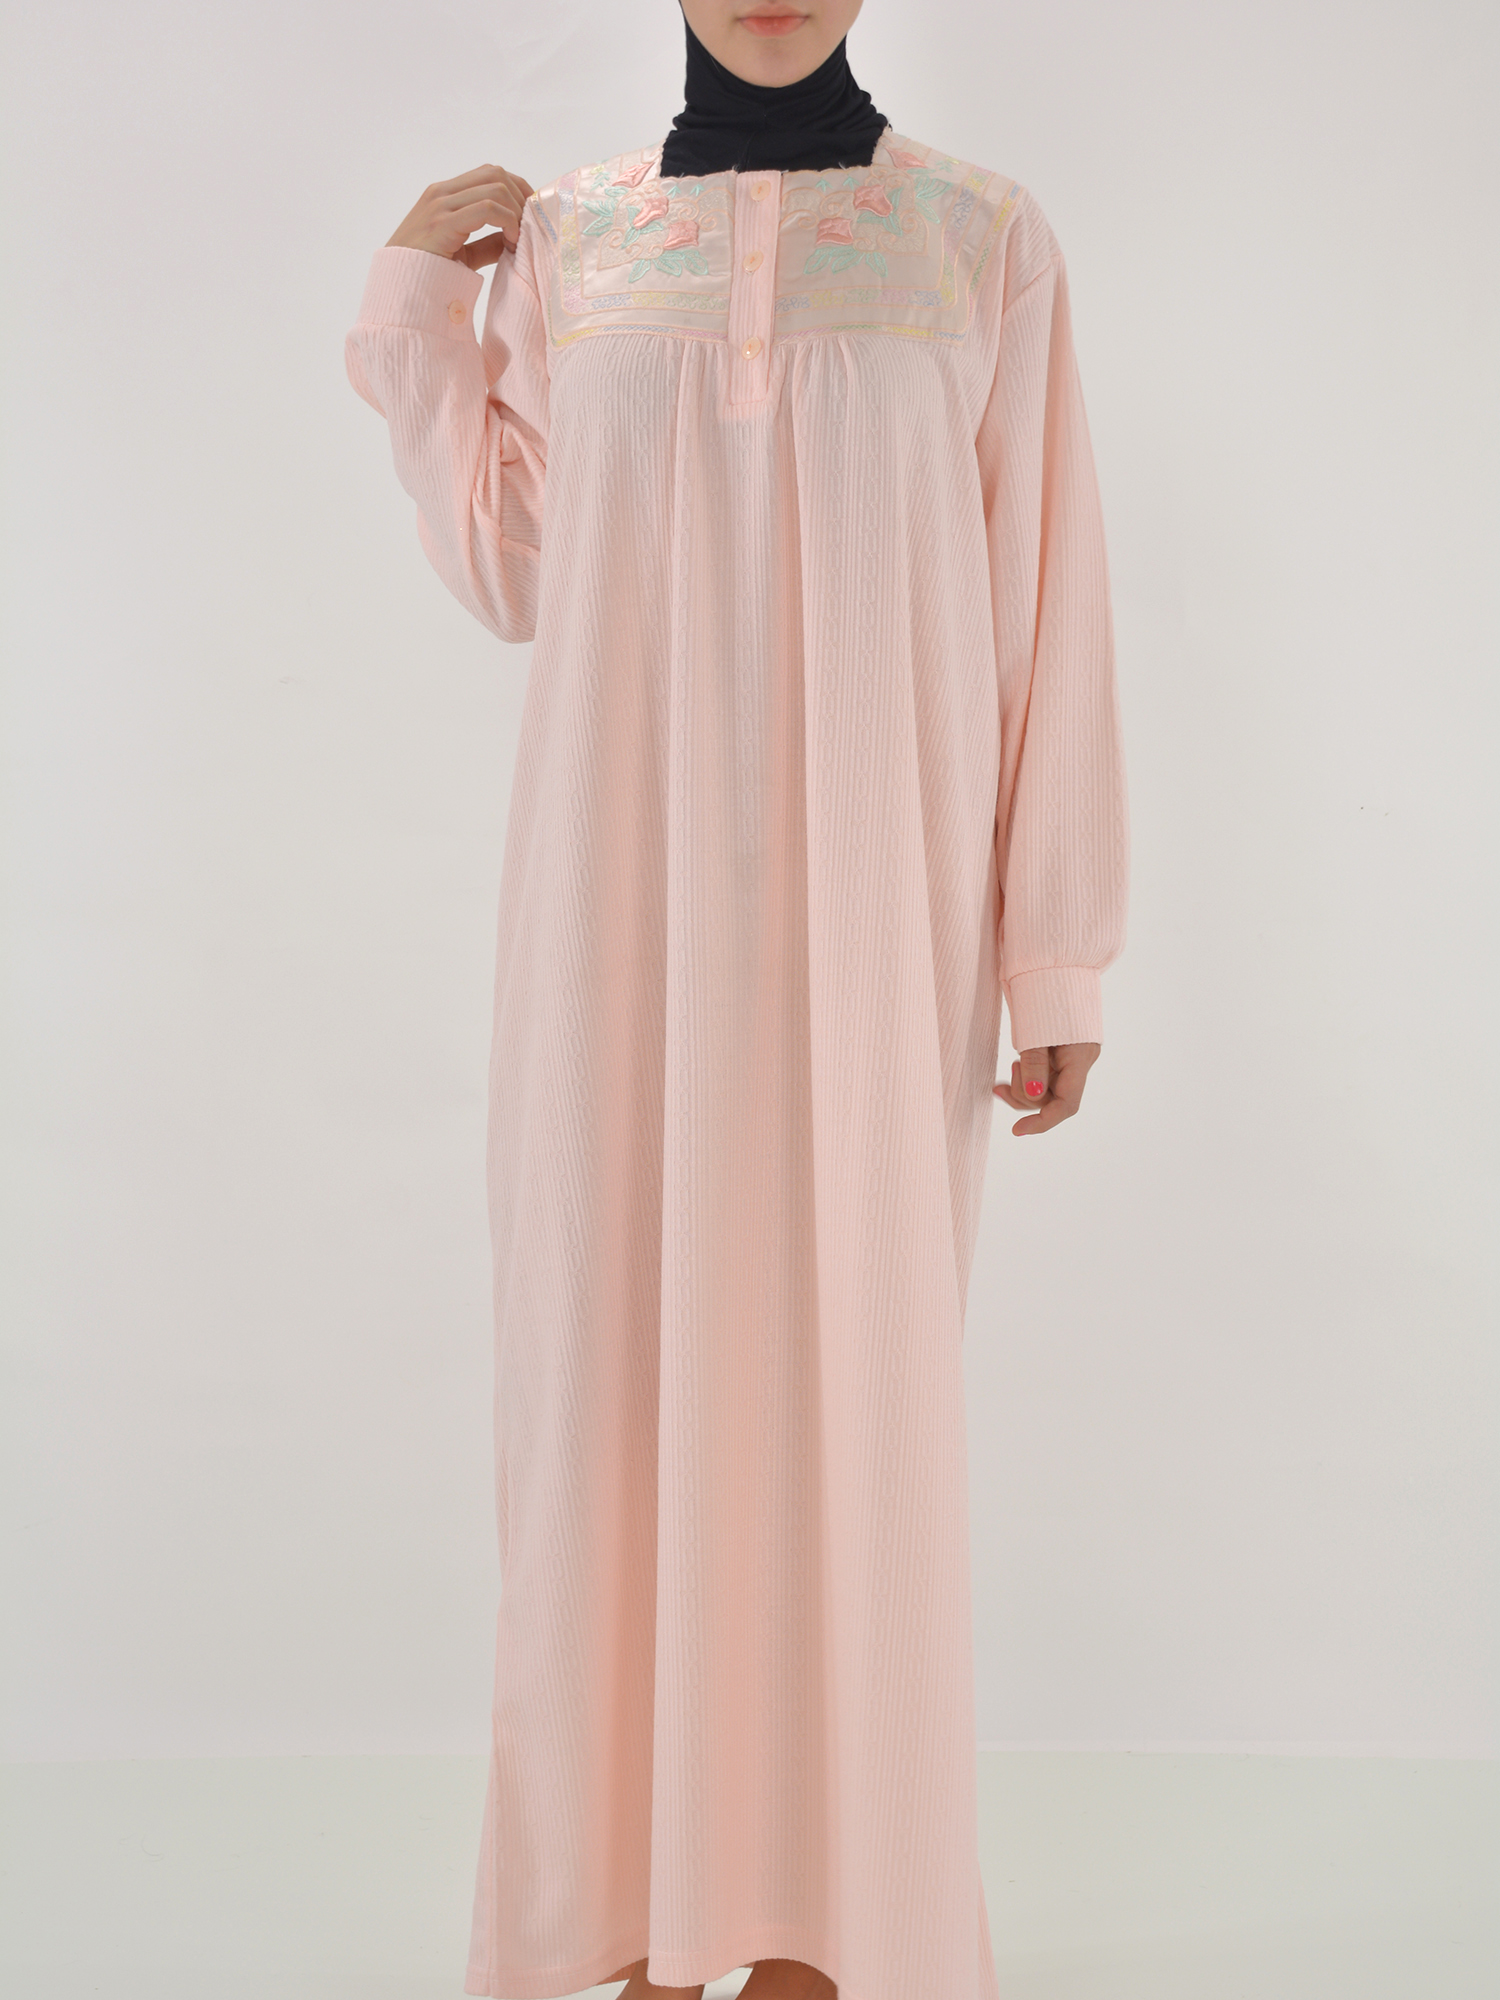 Daffodil Embroidered Cotton Nightgown | NG103 -